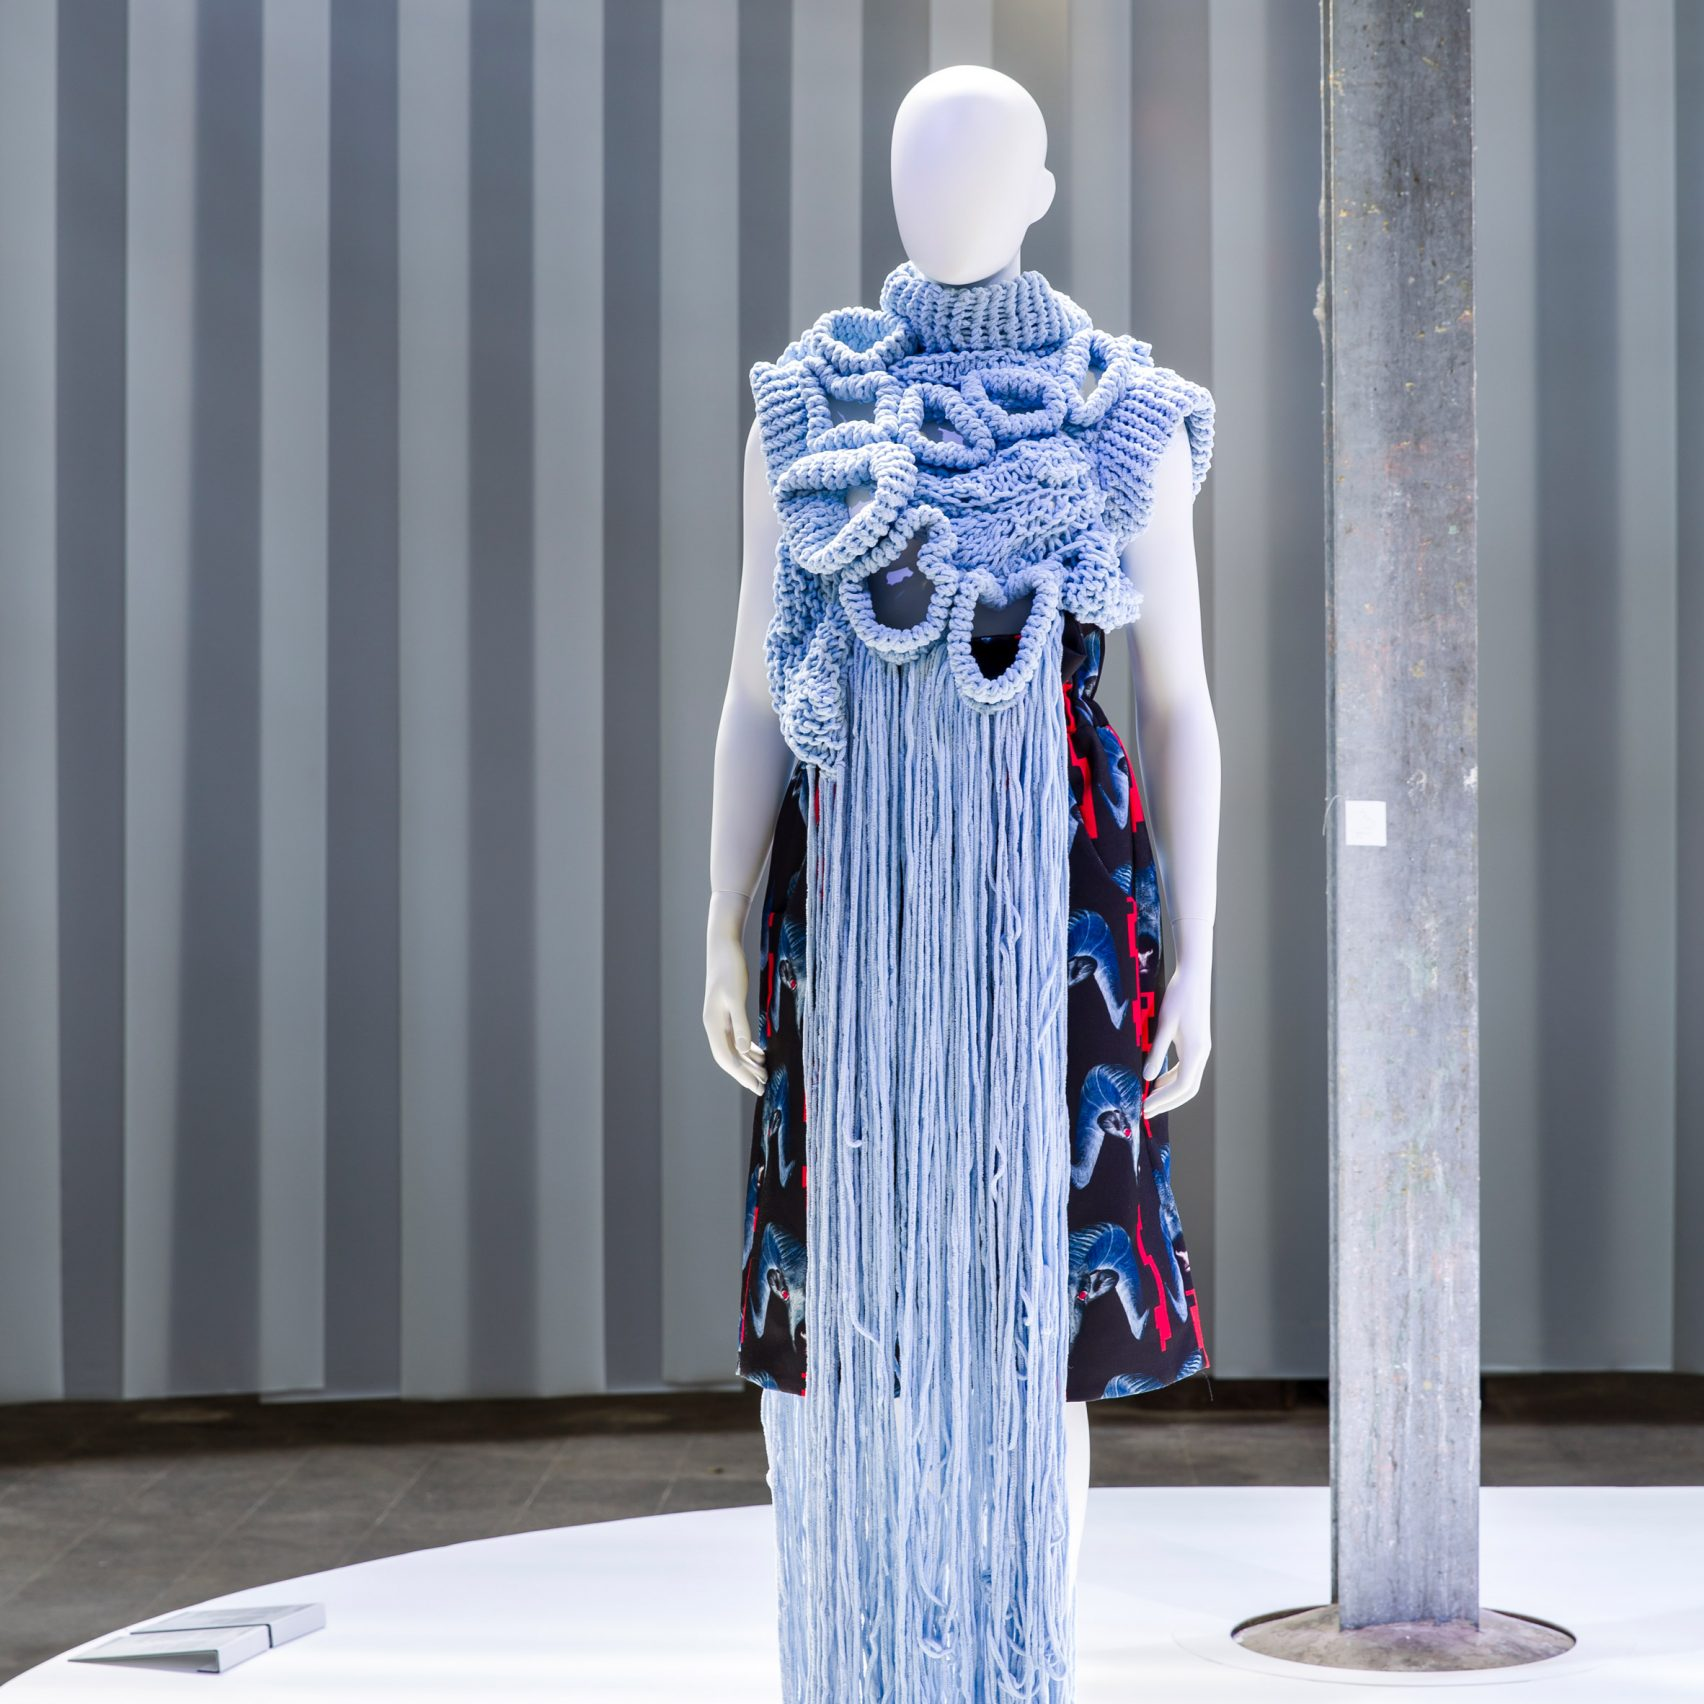 State of Fashion Exhibition